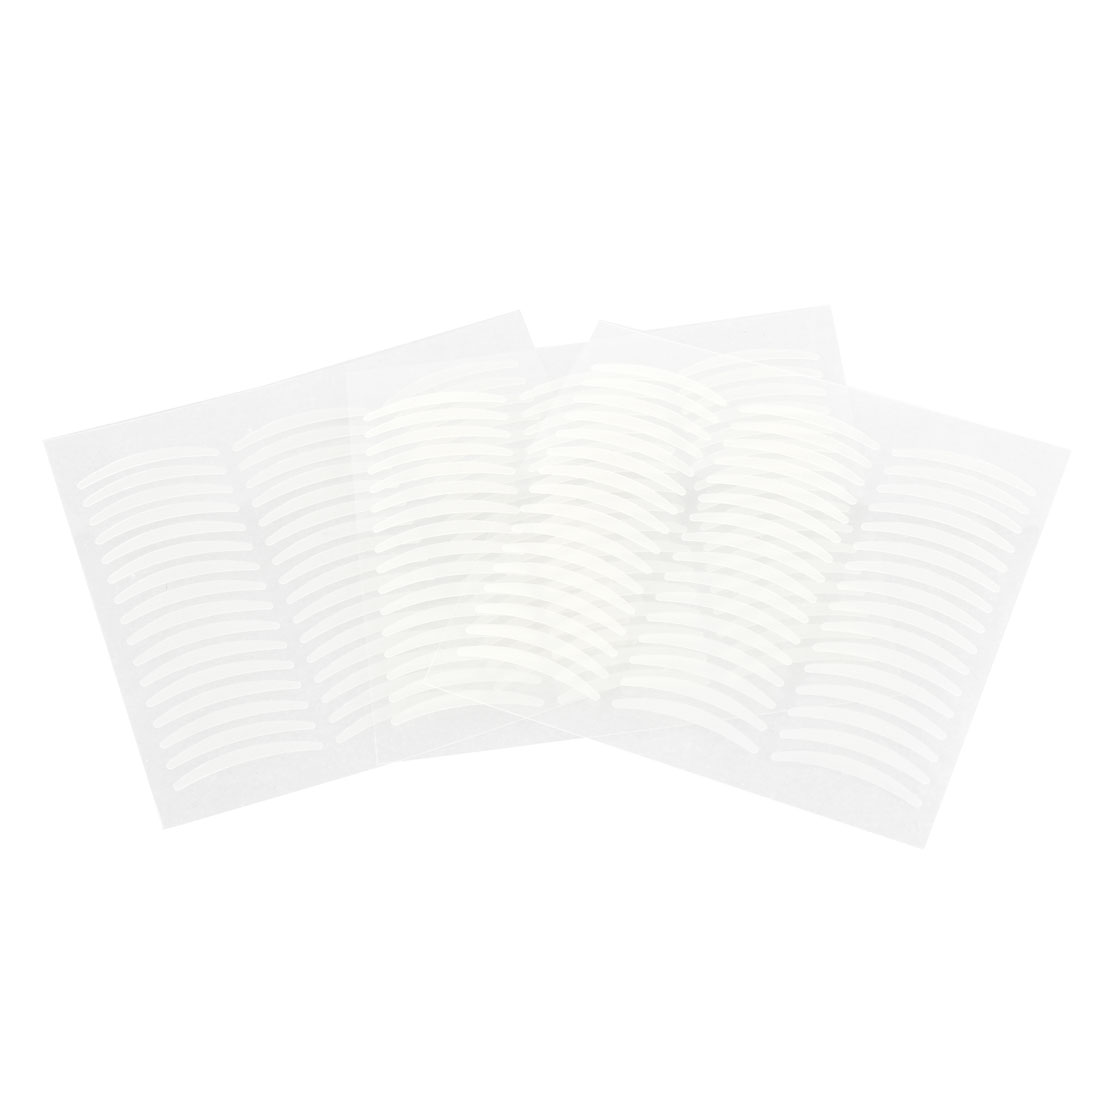 120 Pairs Breathable Invisible Double Eyelid Sticker Tape